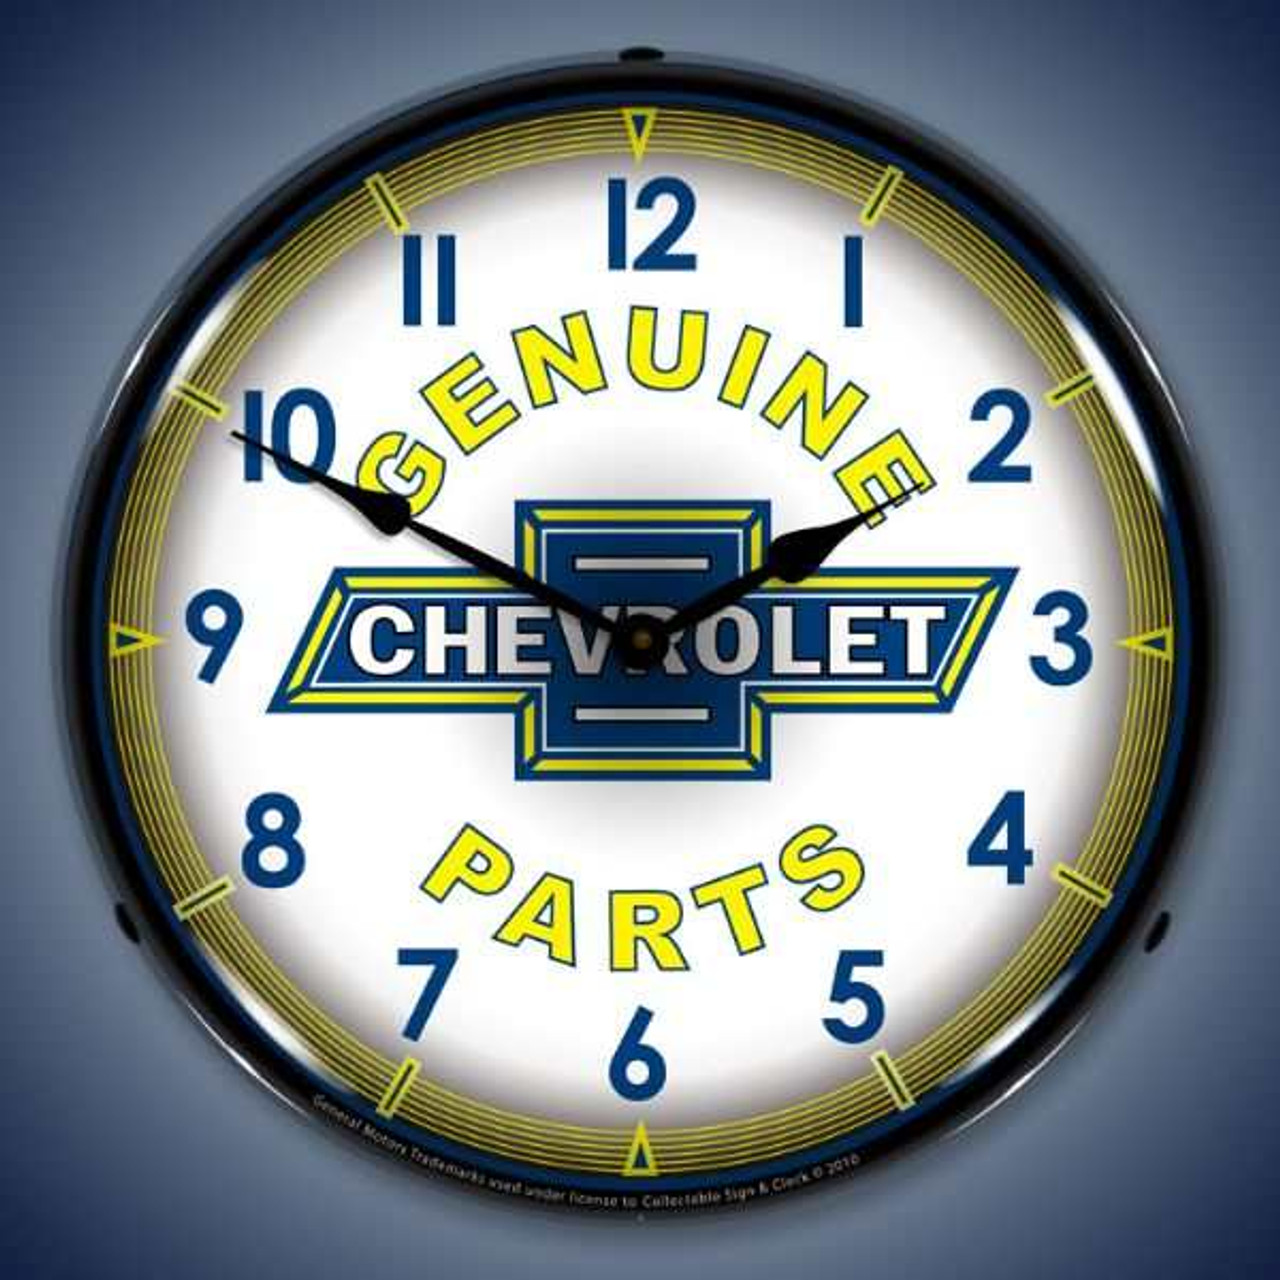 Retro Genuine Chevy Parts Lighted Wall Clock 14 x 14 Inches